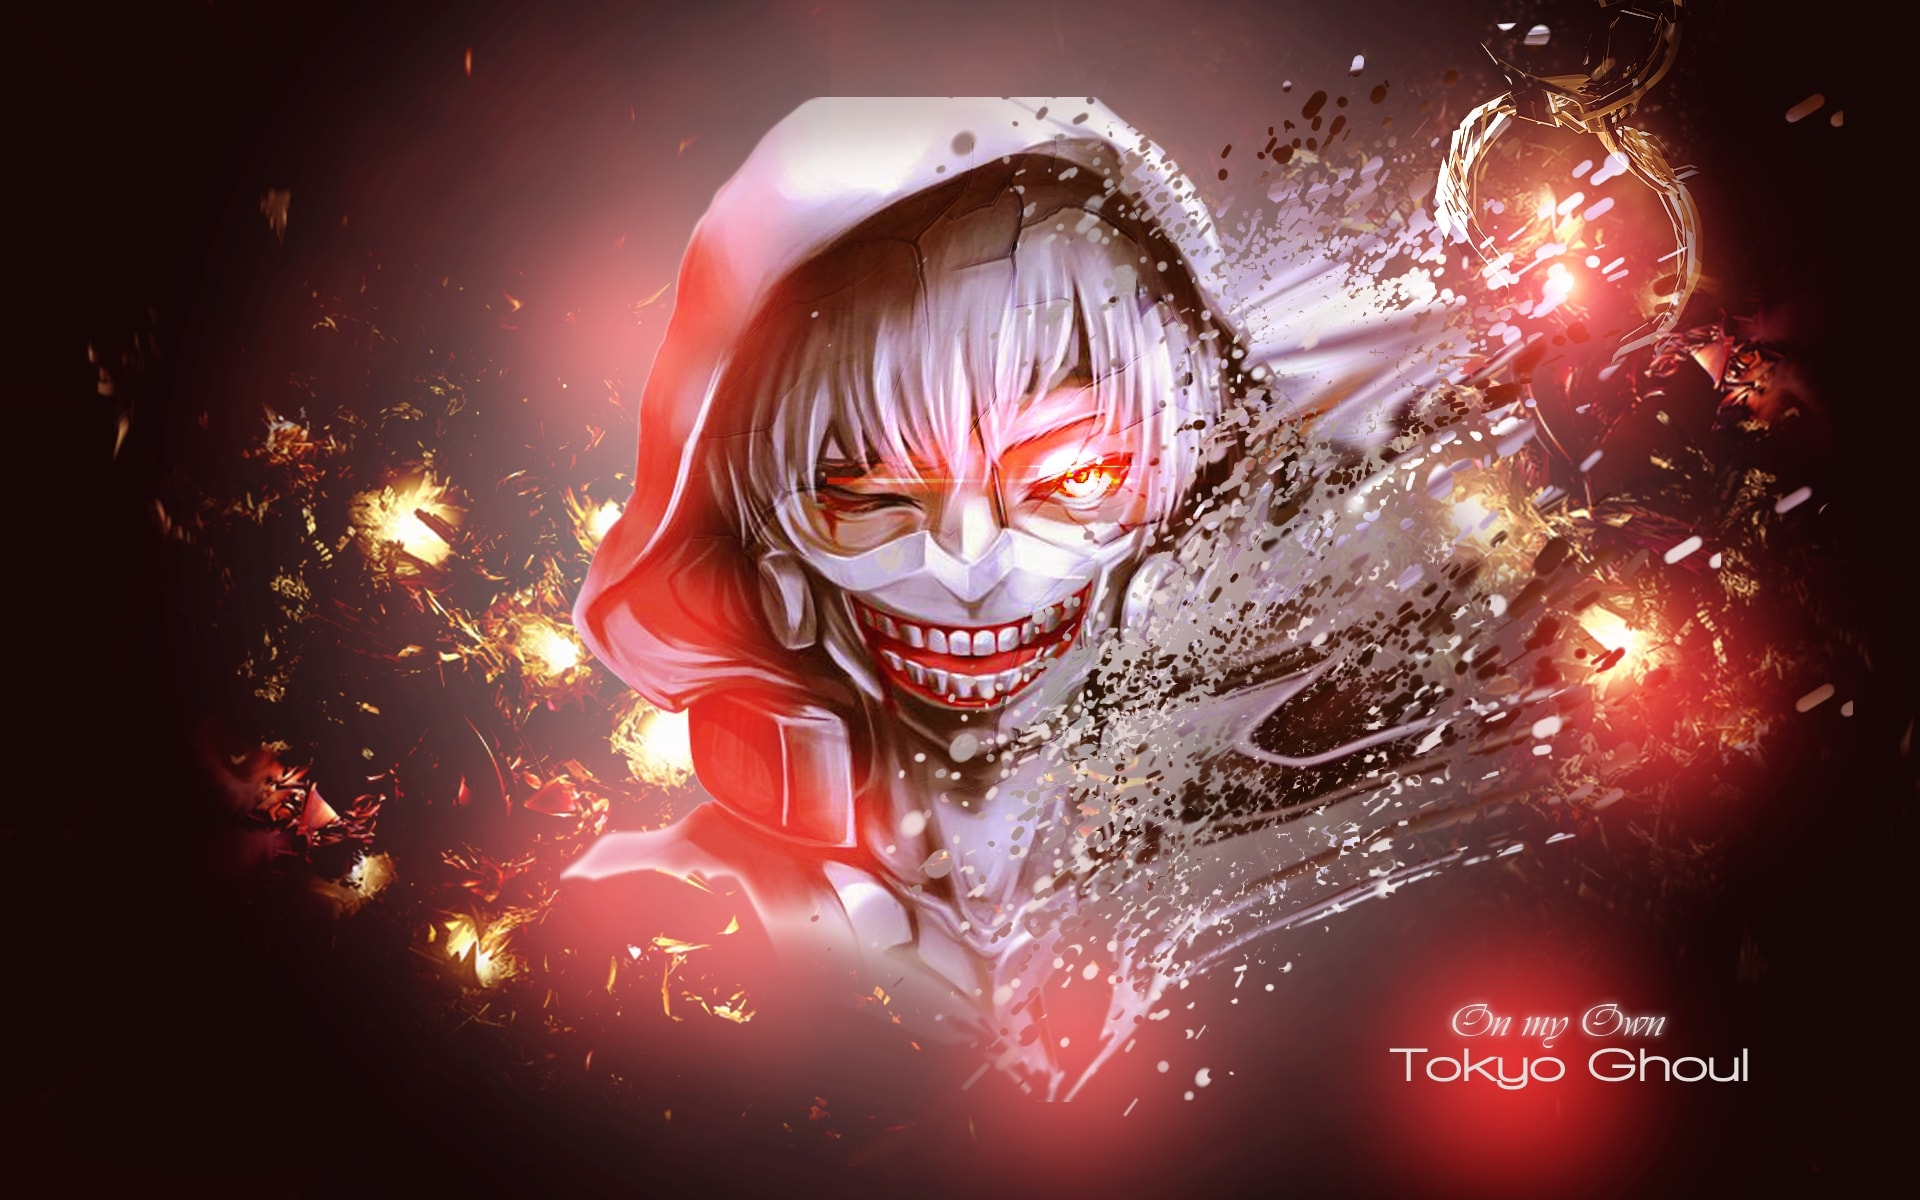 Wallpaper Ken Kaneki Anime Tokyo Ghoul Desktop Picture Hd Photo